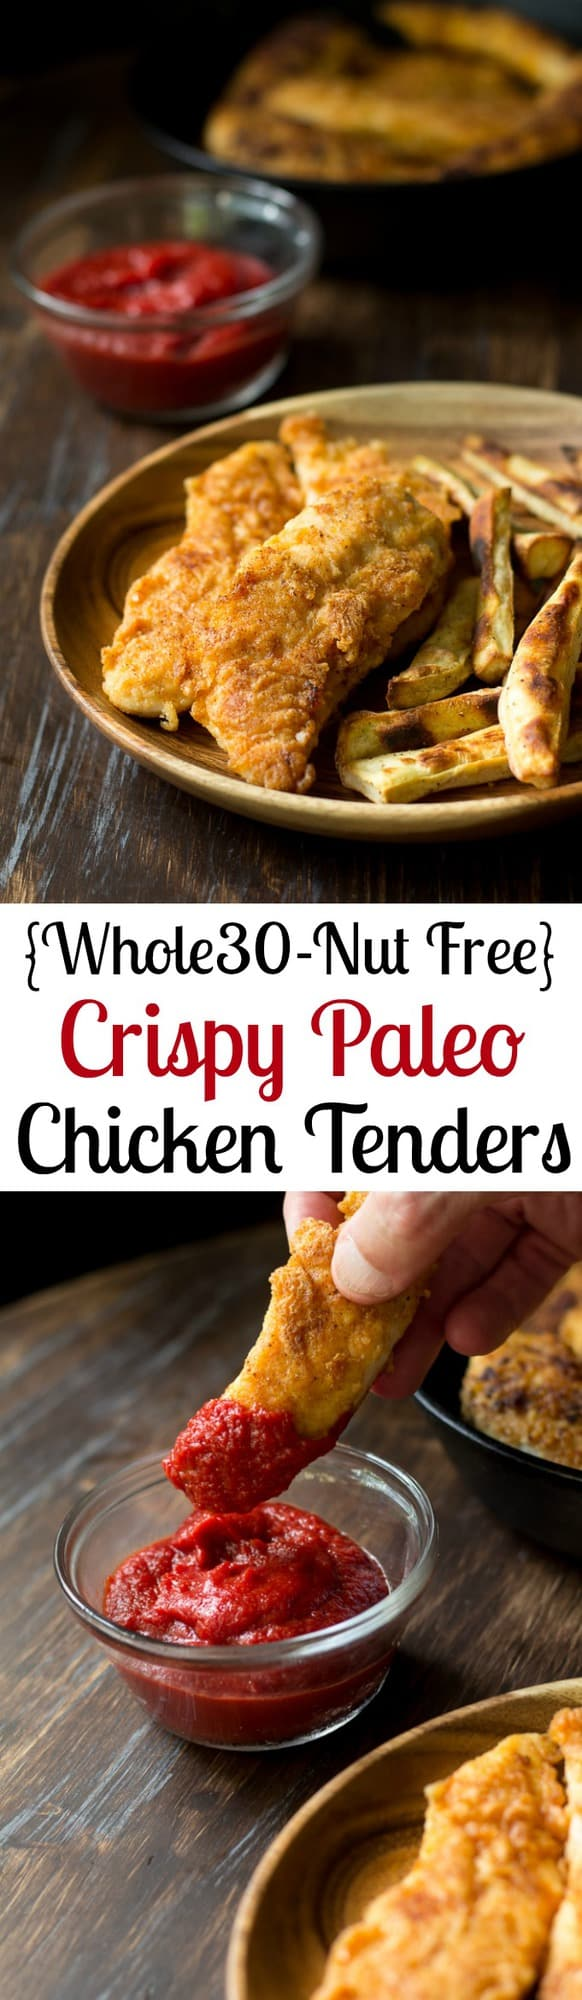 Crispy paleo chicken tenders whole30 nut free crispy paleo chicken tenders that are whole30 friendly and 22breaded22 with a forumfinder Choice Image